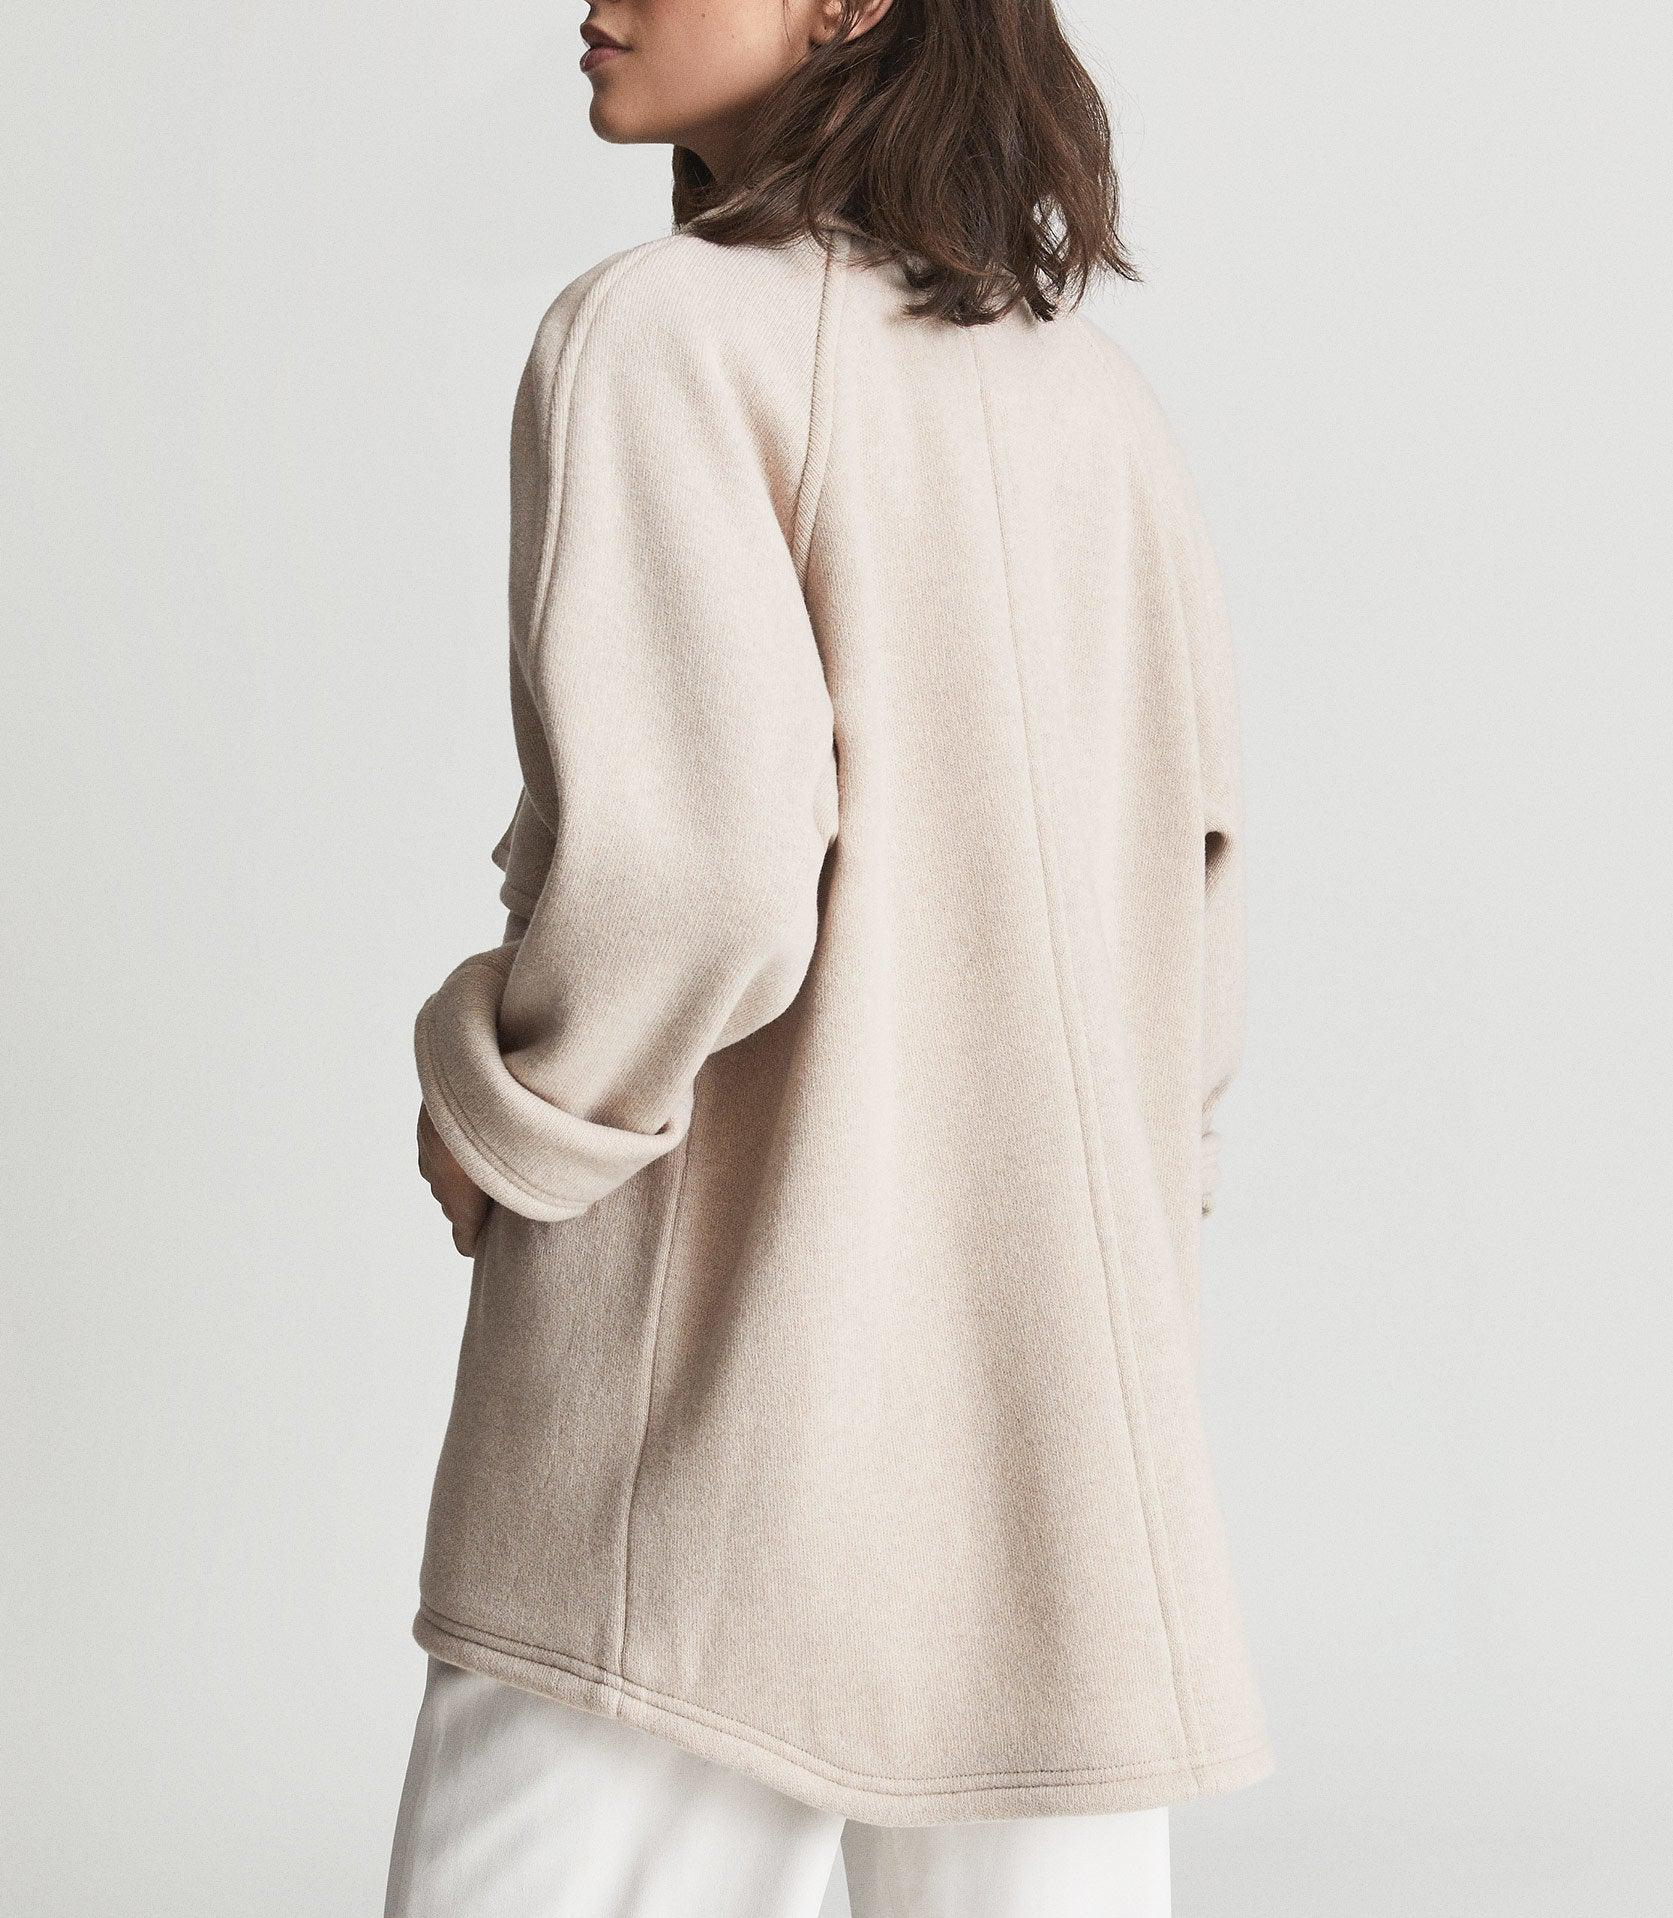 SYDEN - RELAXED TWIN POCKET OVERSHIRT 3